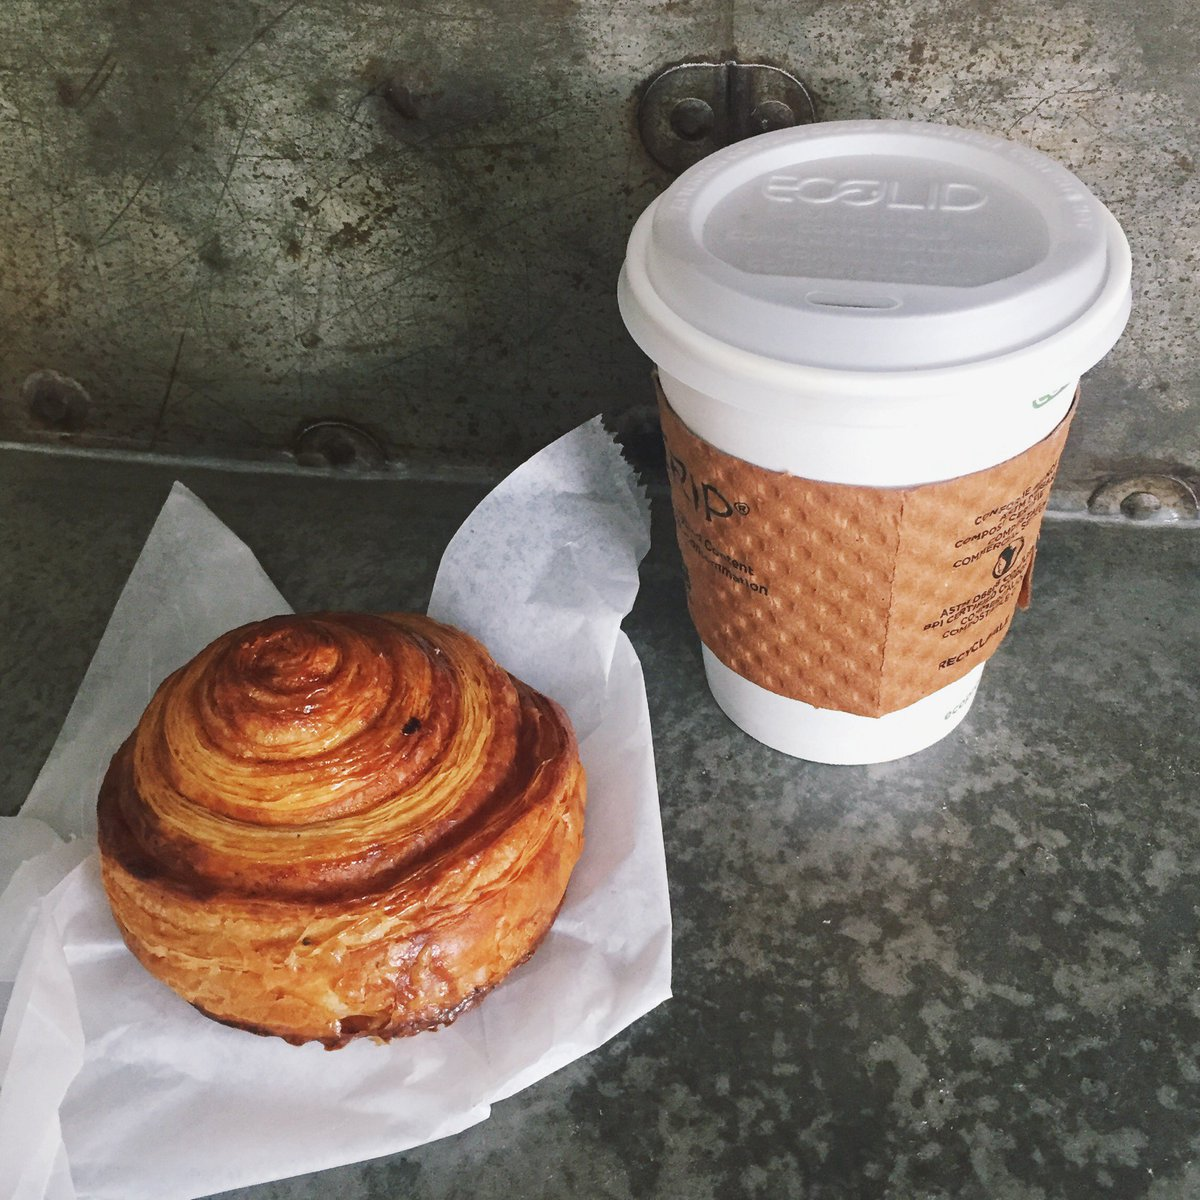 Kick off your morn w/ an Easy Start: small coffee + any pastry for $5 Mon-Fri 7-11am!   #easystart #pastry #coffee https://t.co/ZNWVtfDshK